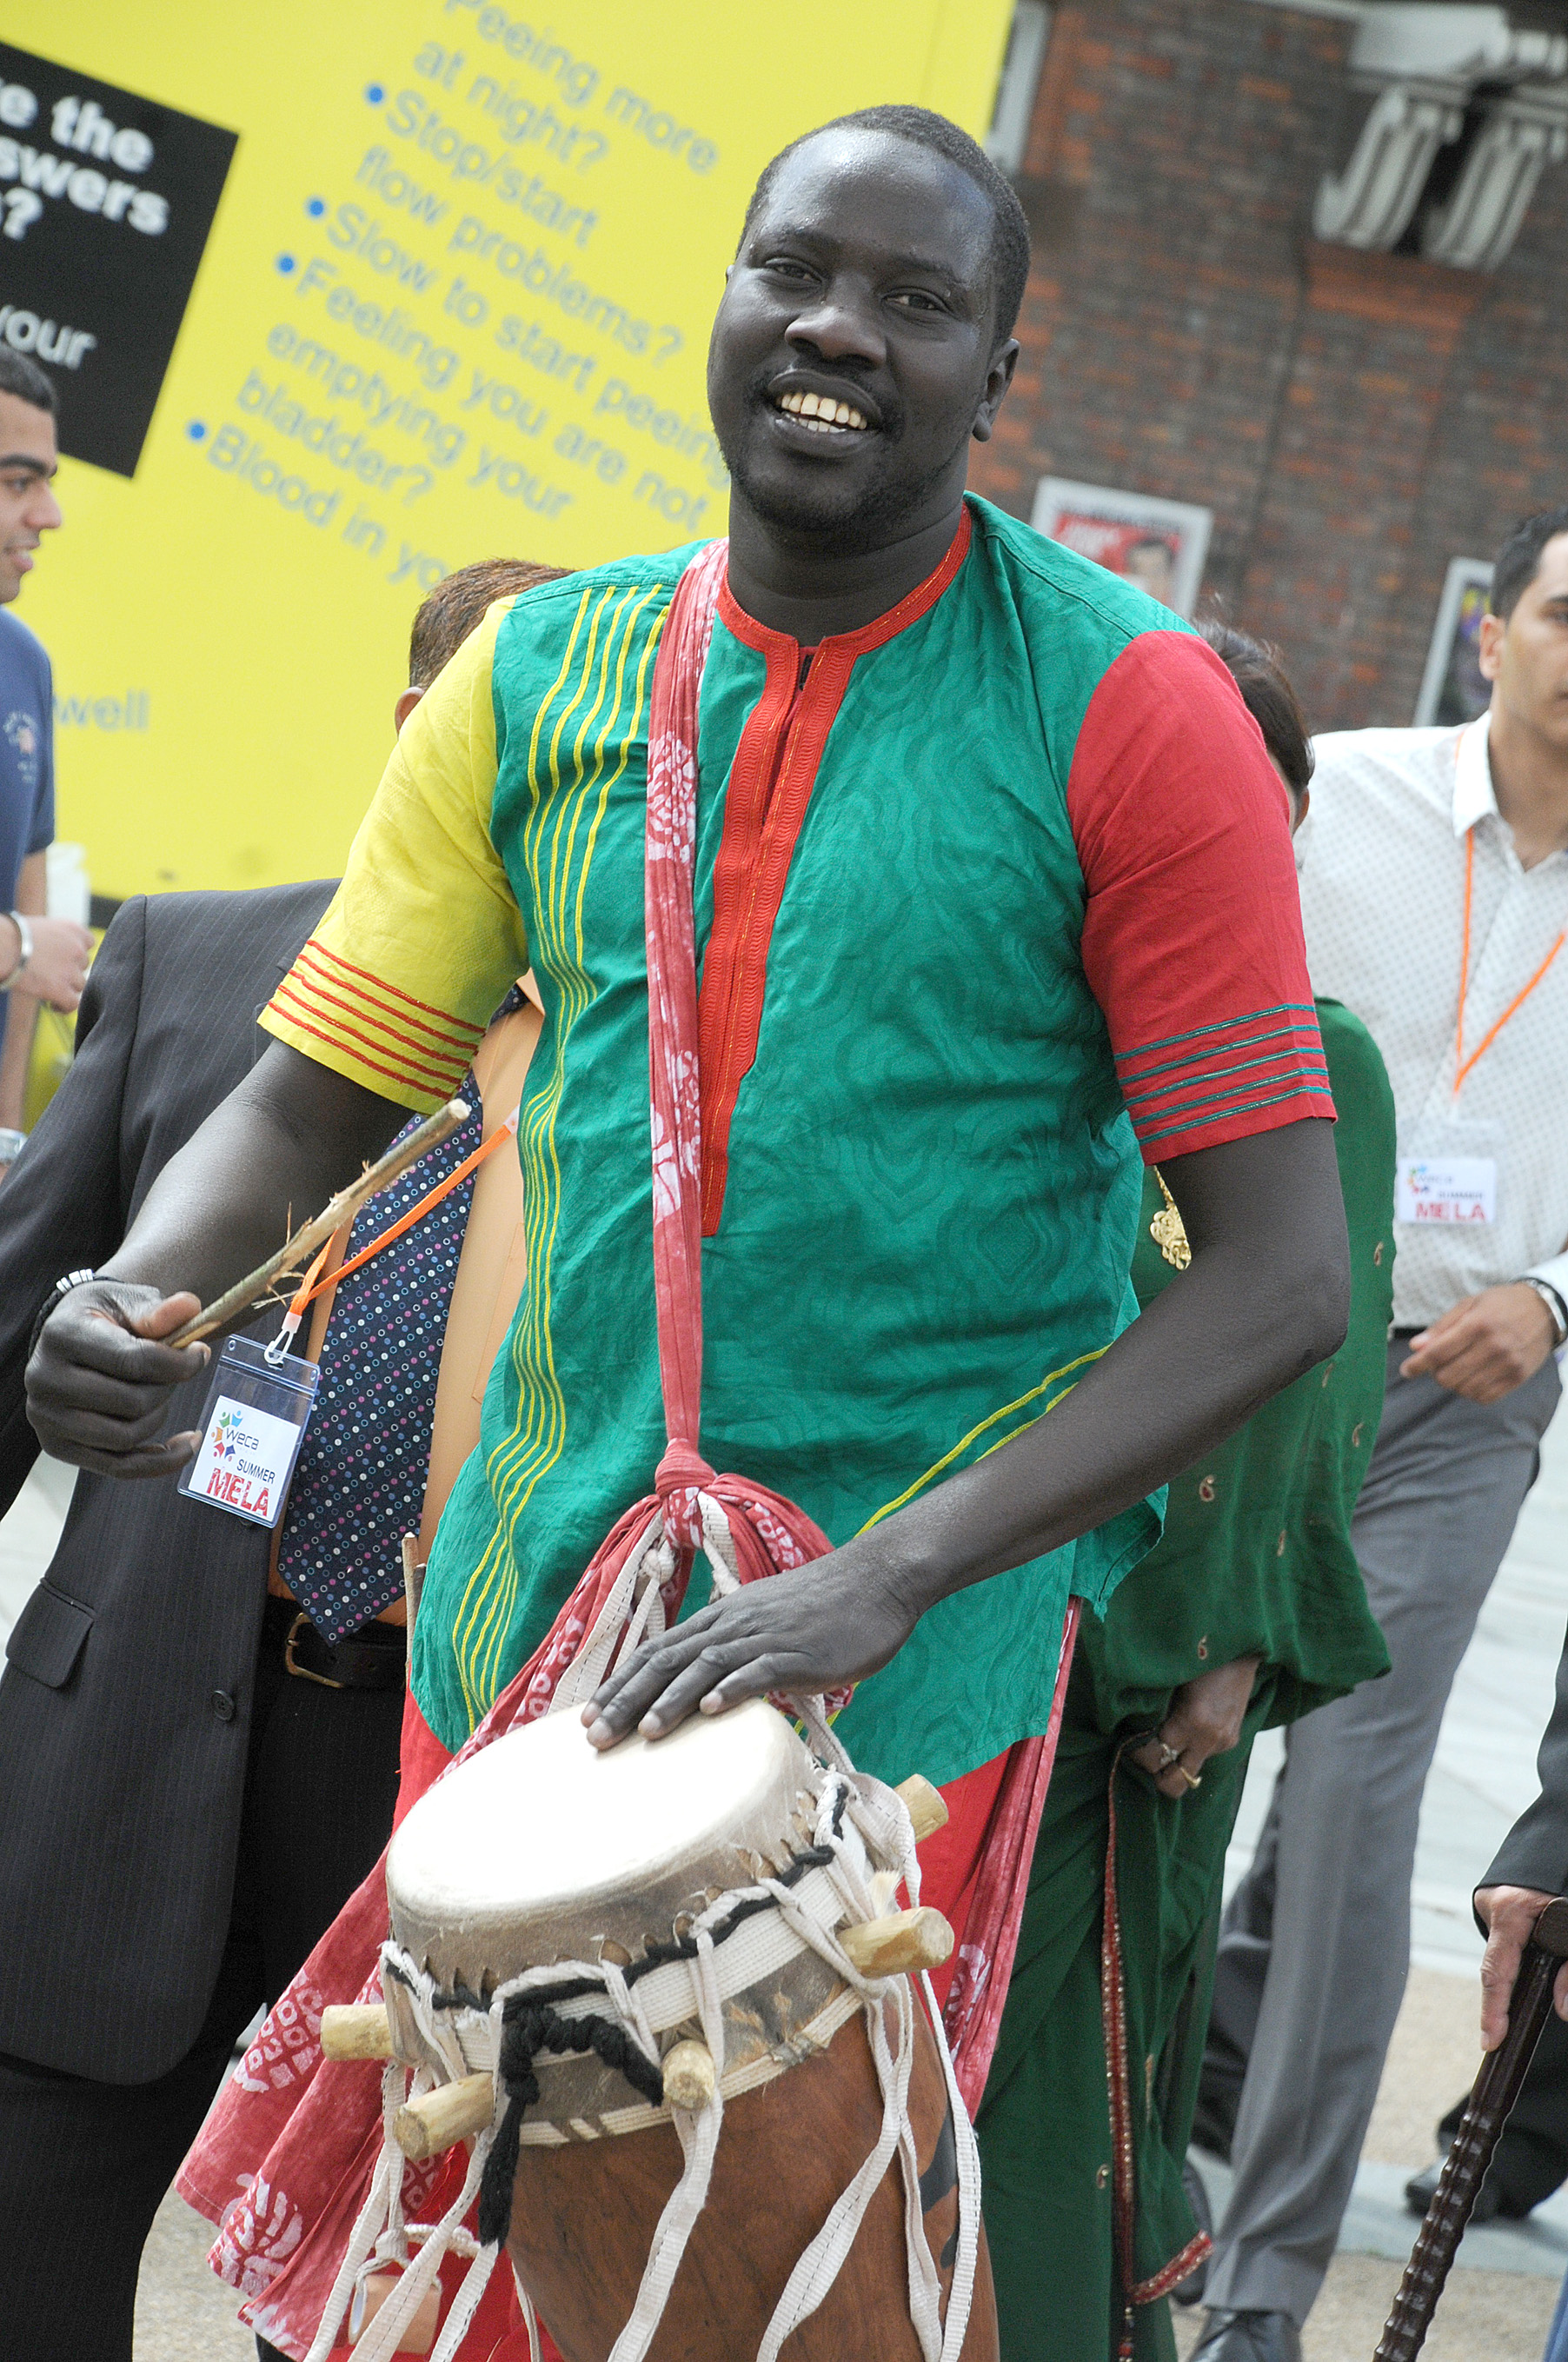 A performer at last year's event